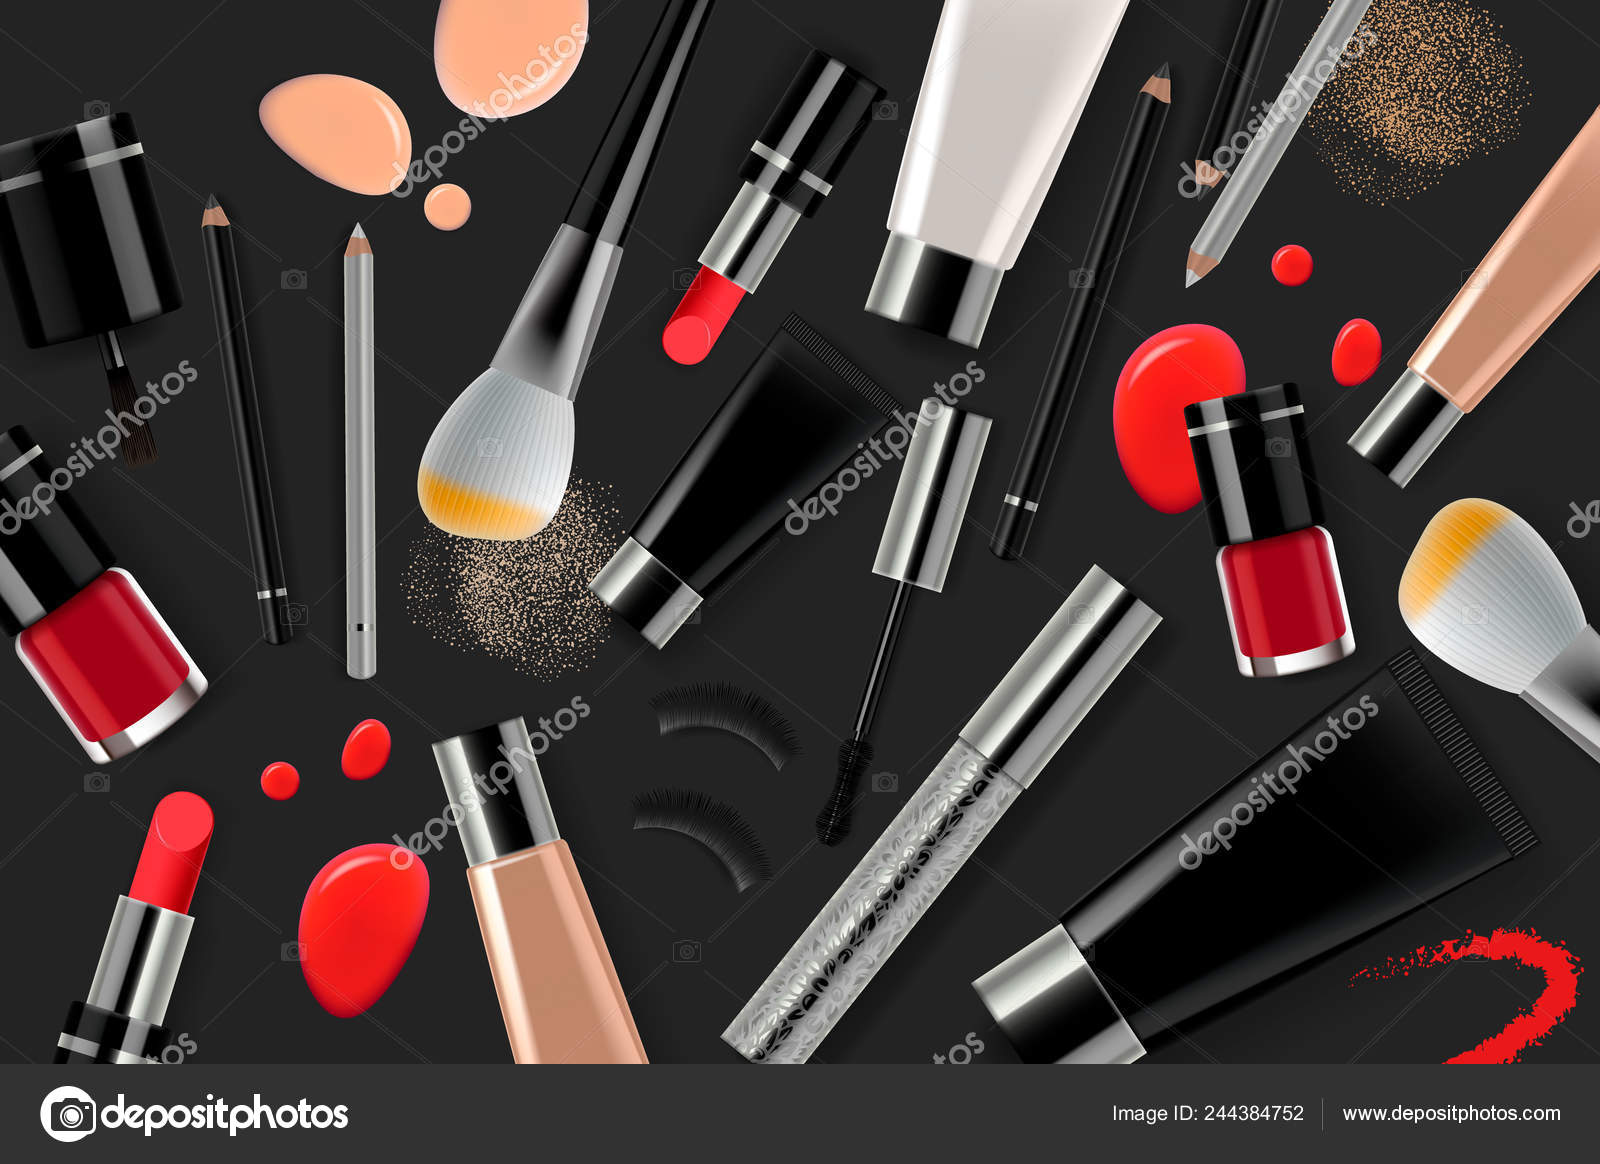 Makeup Banner Template For Online Beauty Store Poster Design With Beauty Products And Cosmetic Online Shopping Vector Illustration Stock Vector C Ikopylove 244384752